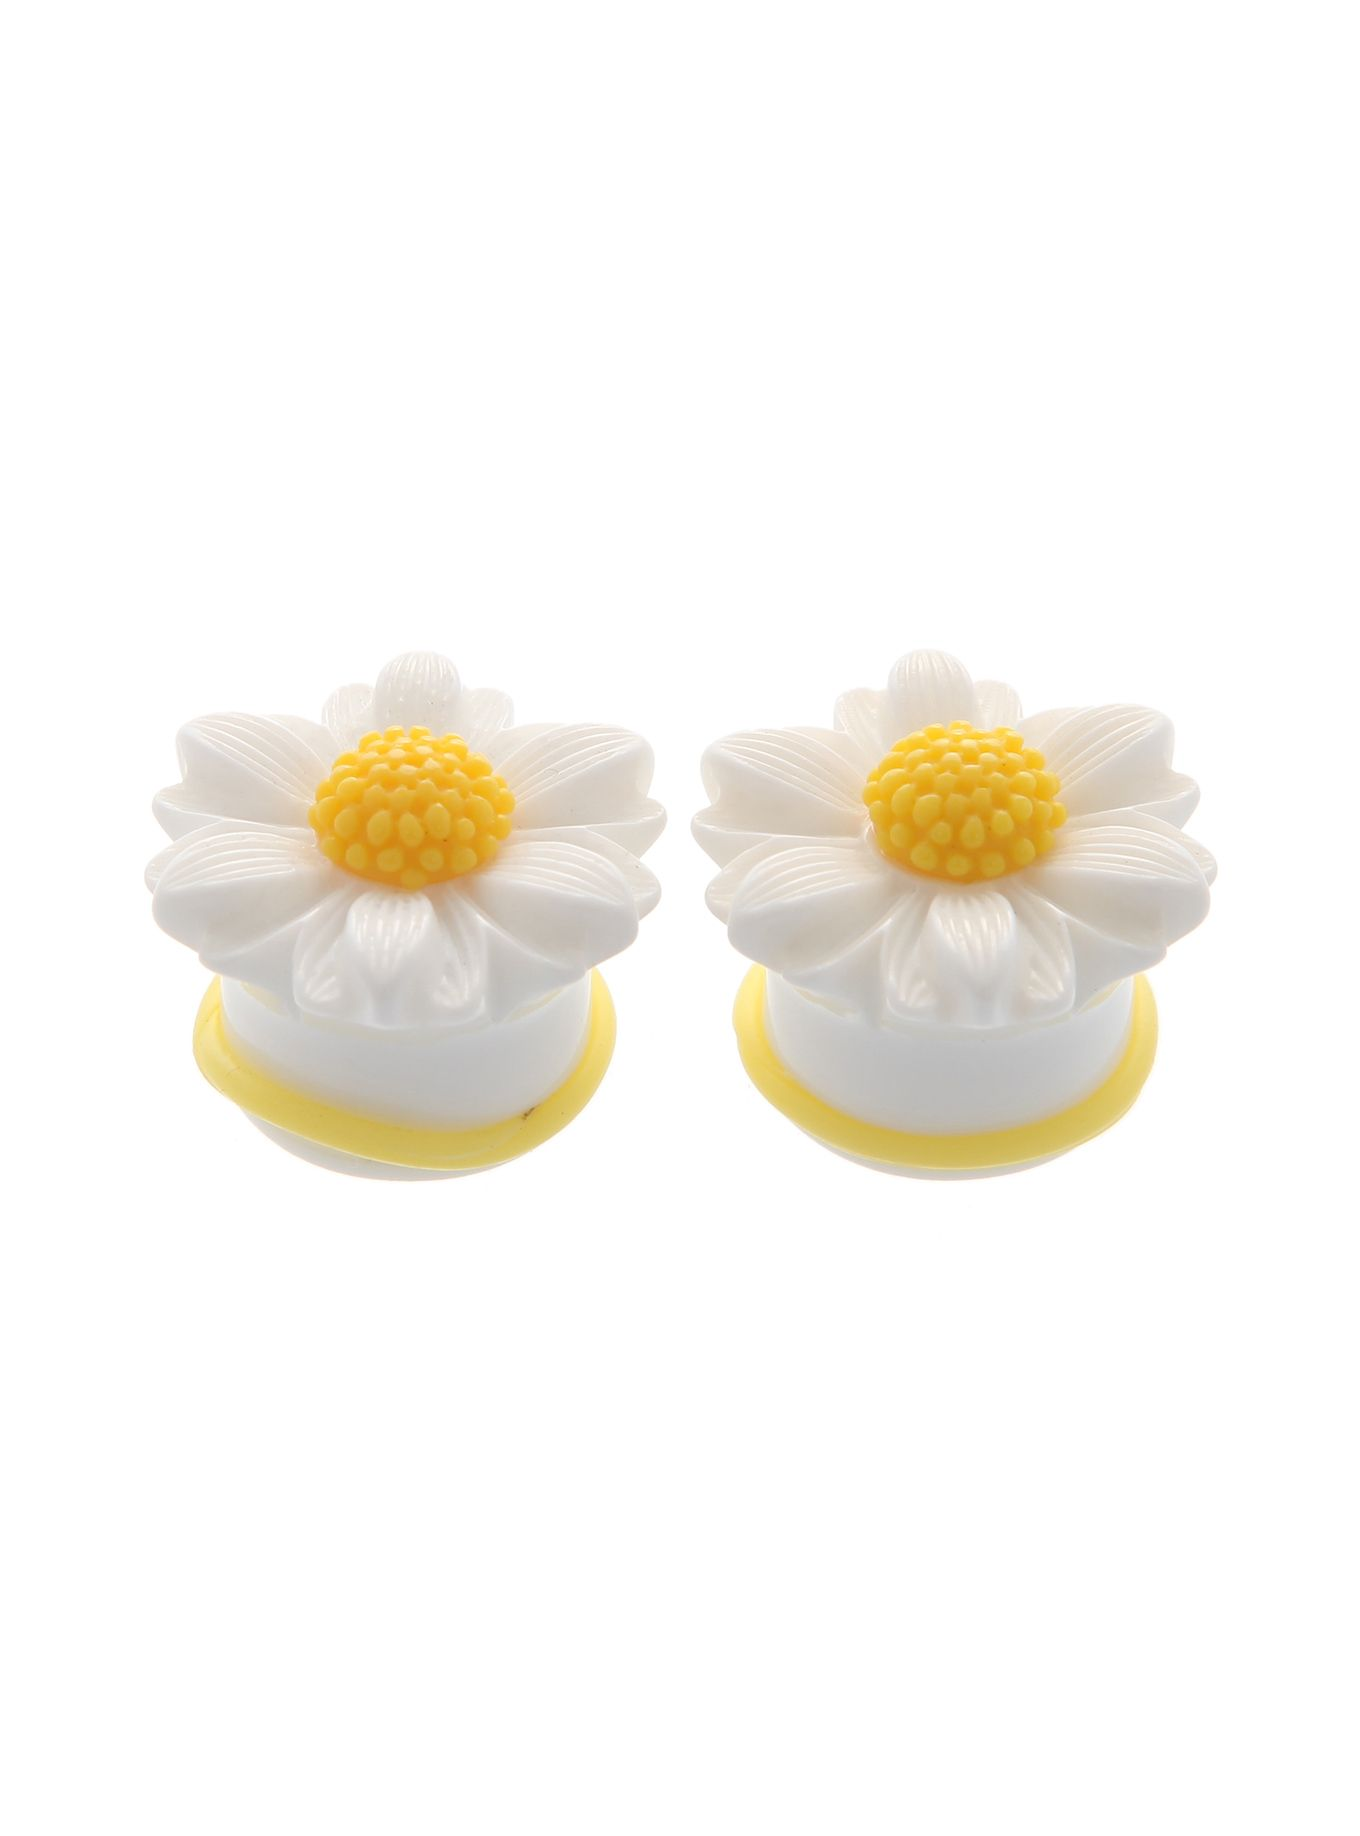 Plugs with a daisy flower design and two yellow o rings 0g plugs with a daisy flower design and two yellow o rings 0g izmirmasajfo